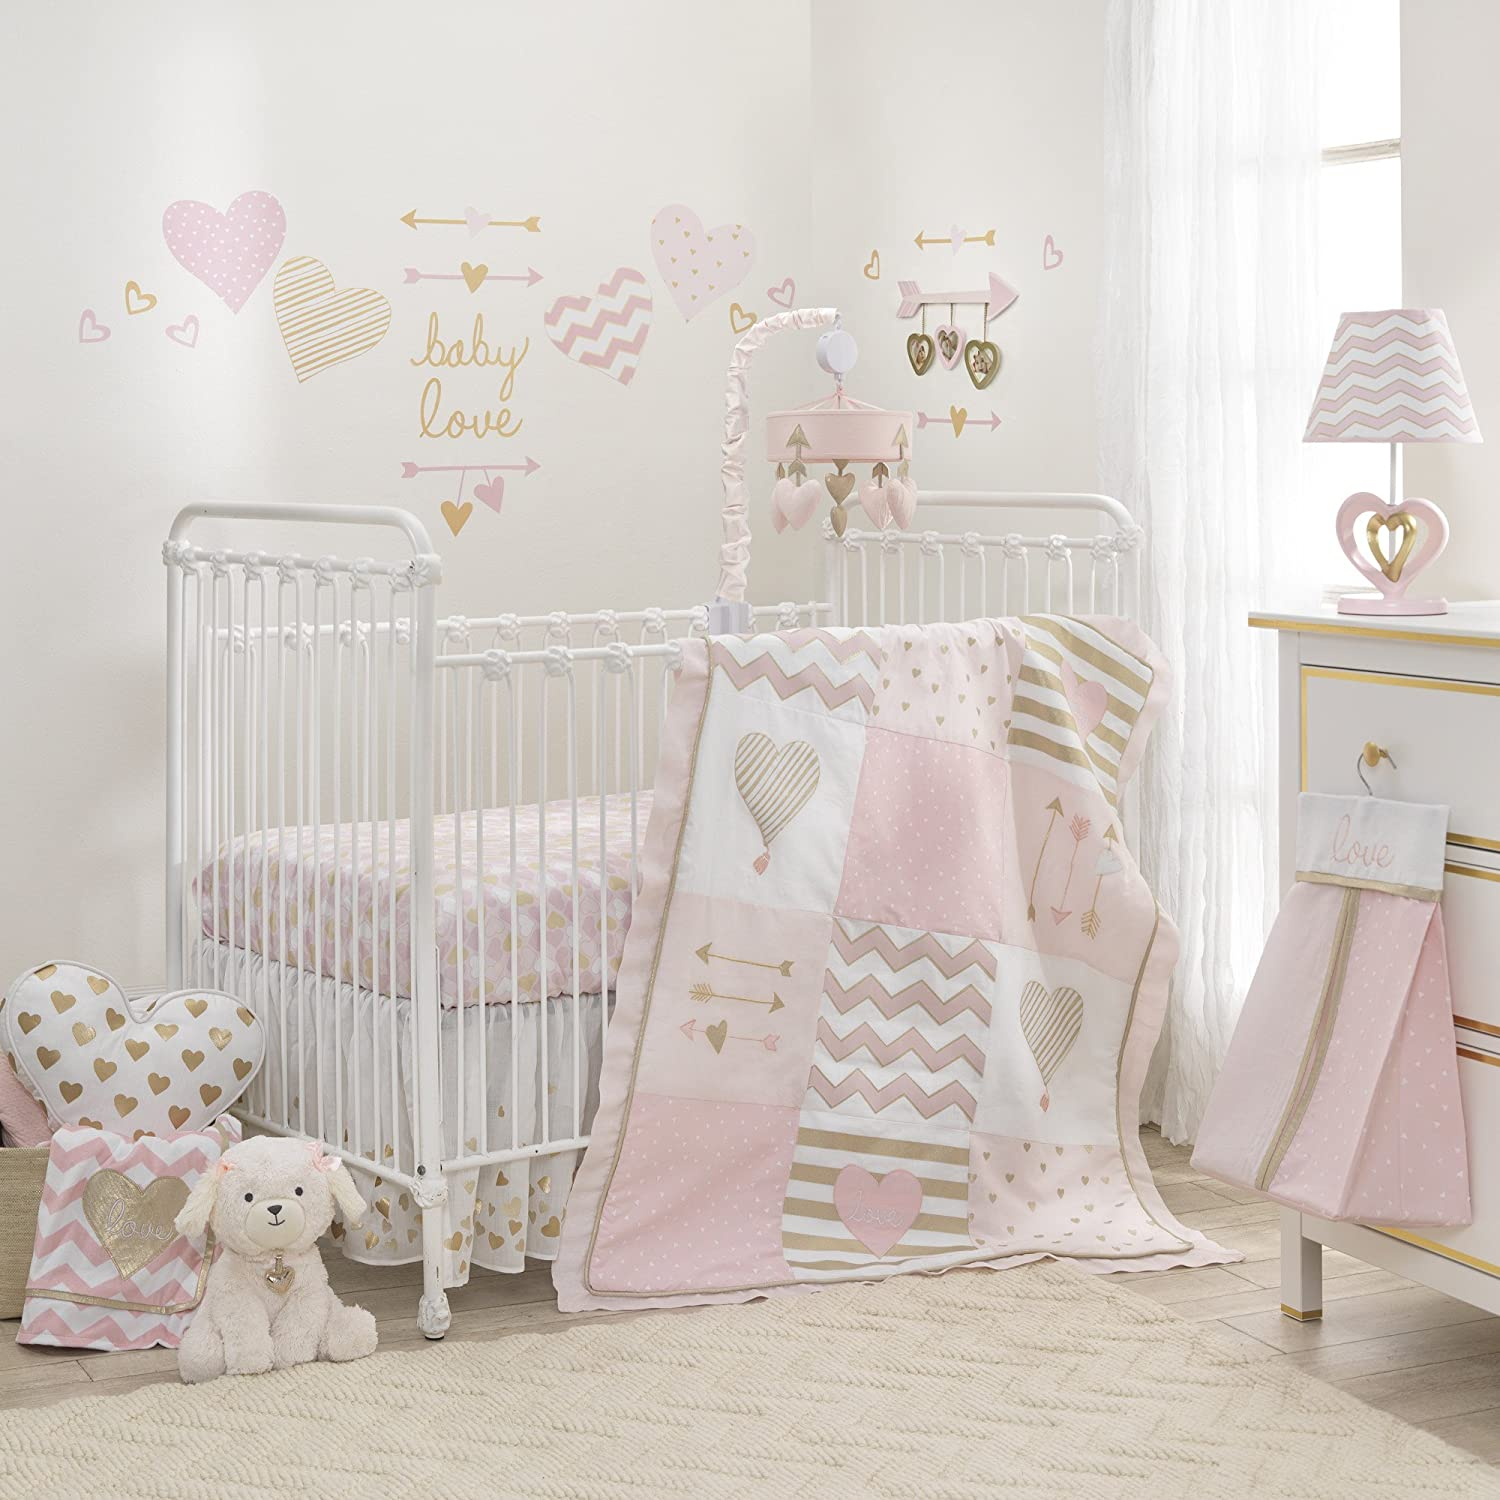 Lambs Ivy Baby Love Pink Gold Girl 4 Low Special Campaign price Heart Bedding Crib Piece